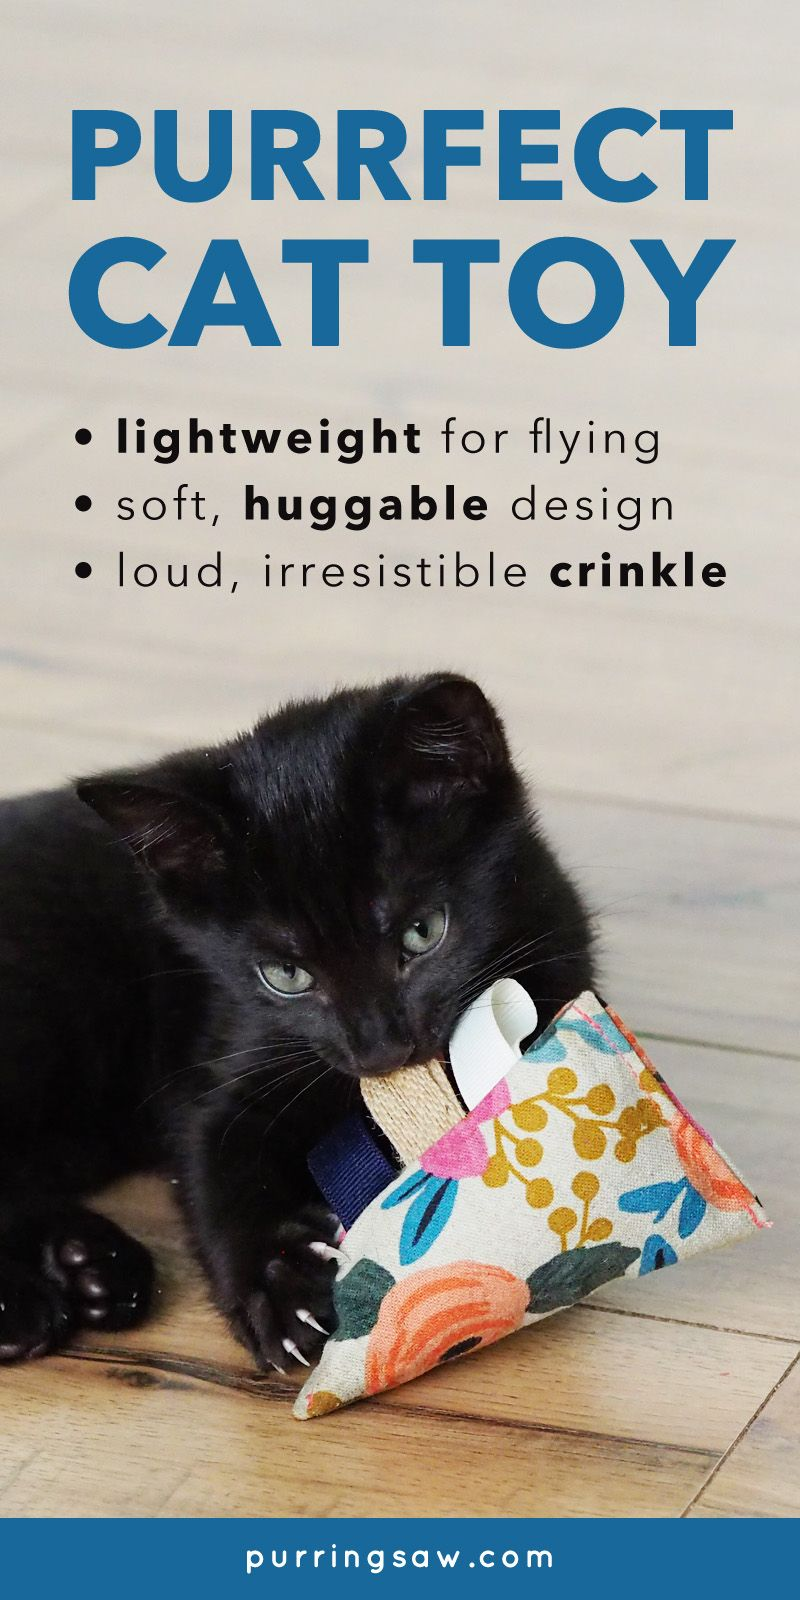 Pin This And Tap To Buy These Cute Catnip Cat Toys Are Lightweight Fly Across The Room At The Slightest Swat H Catnip Cat Toy Cat Toys Cat Stuff Products